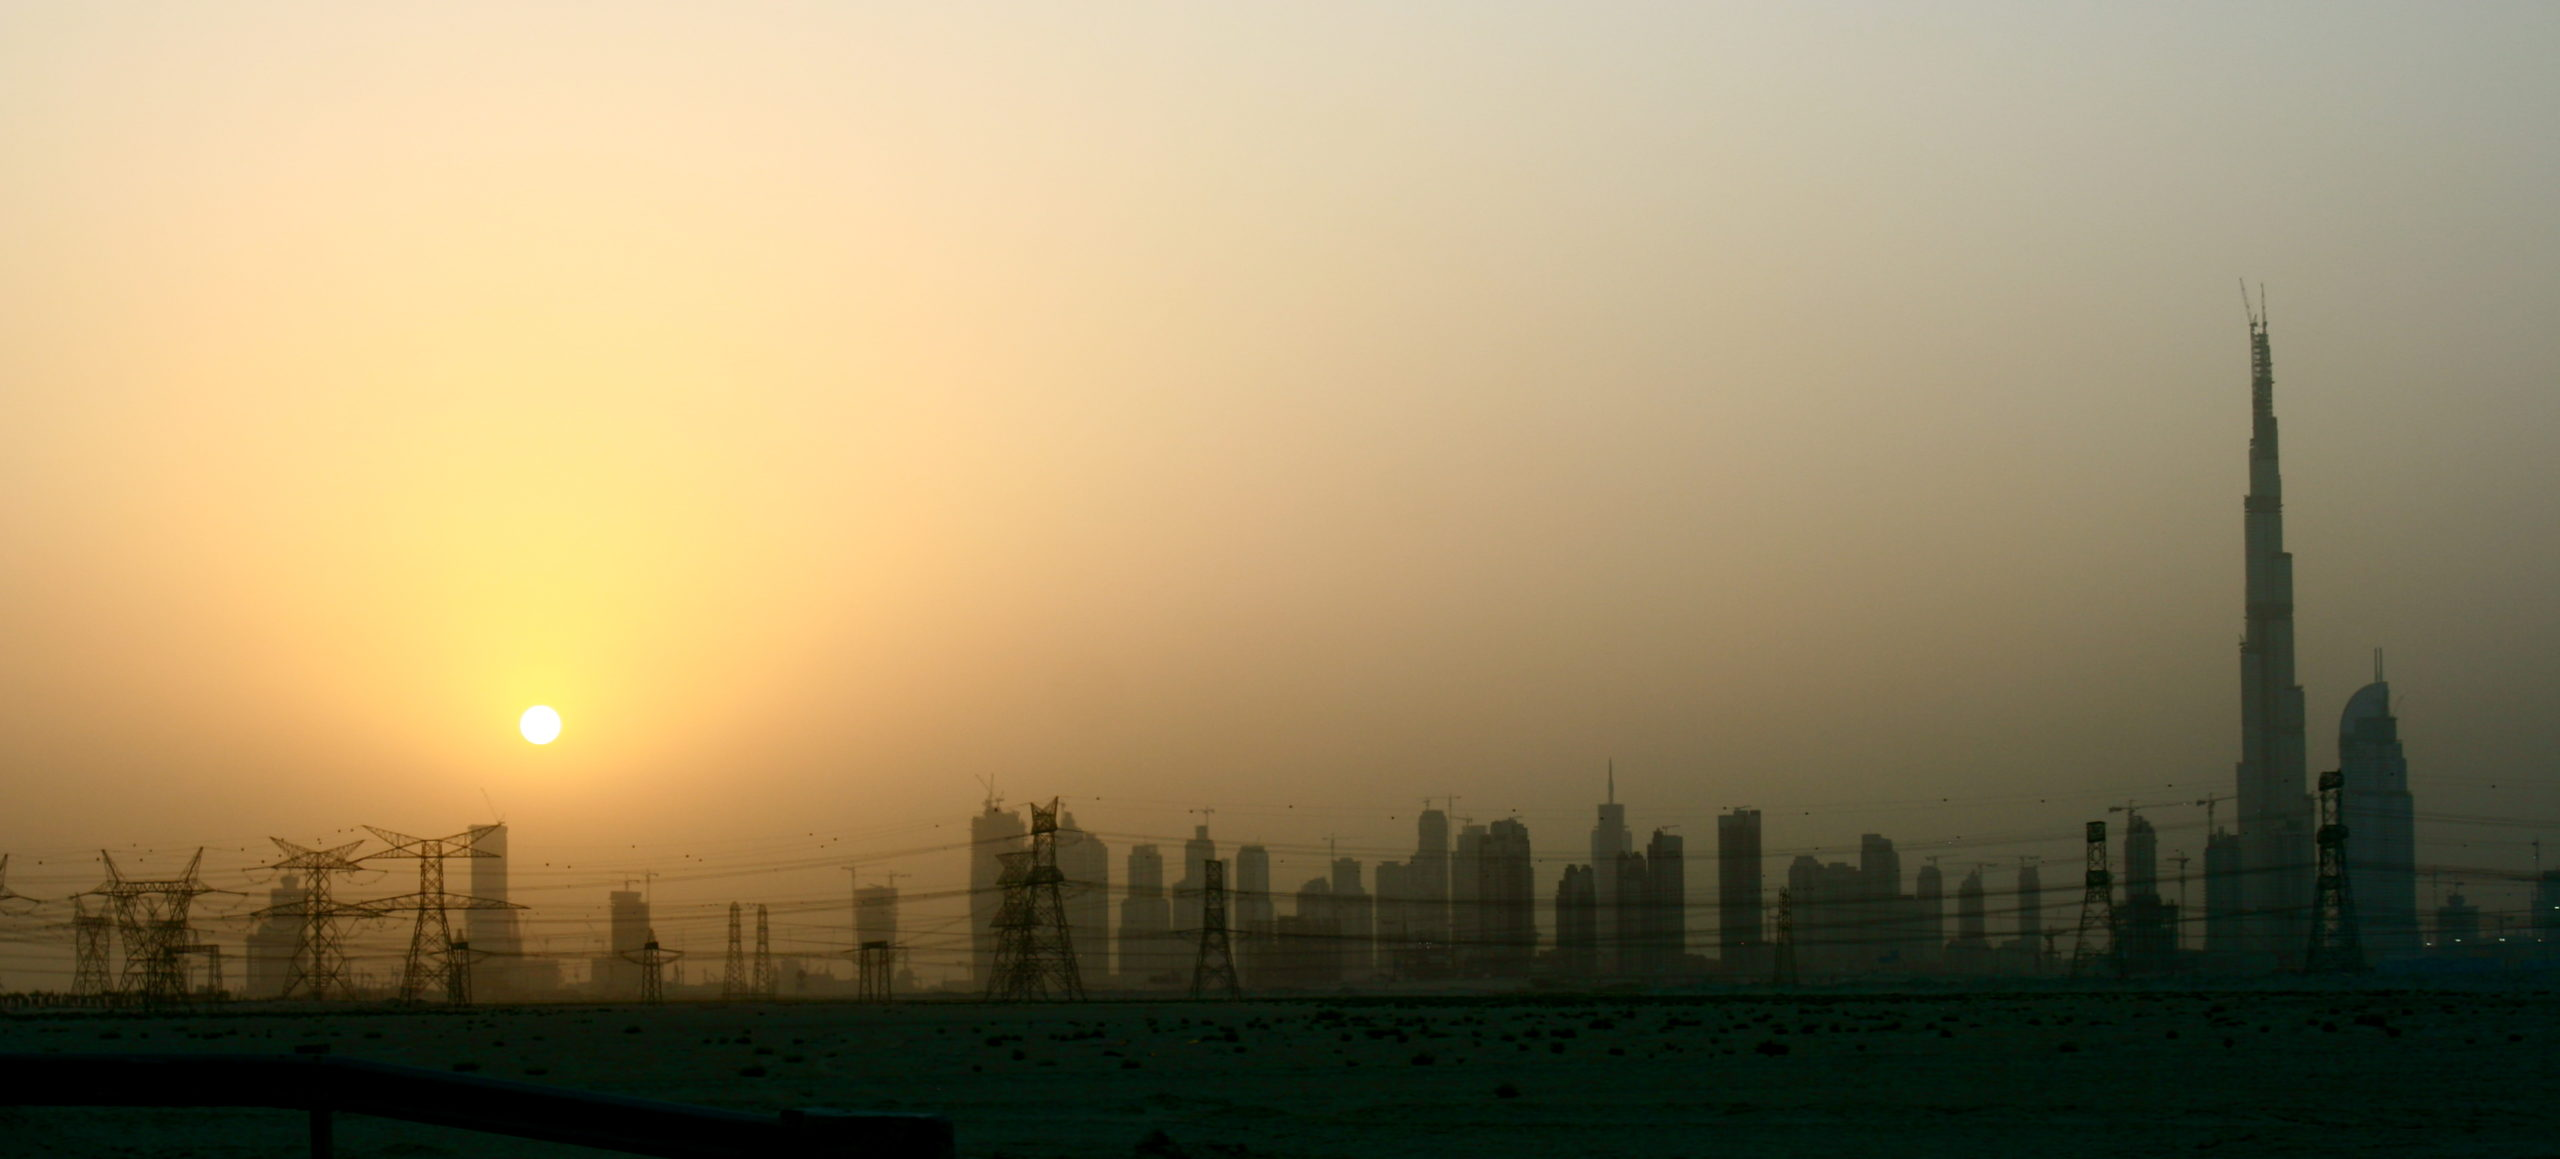 Dubai is aiming to install 5GW of solar at the site by 2030. Source: Flickr/Petter Palander